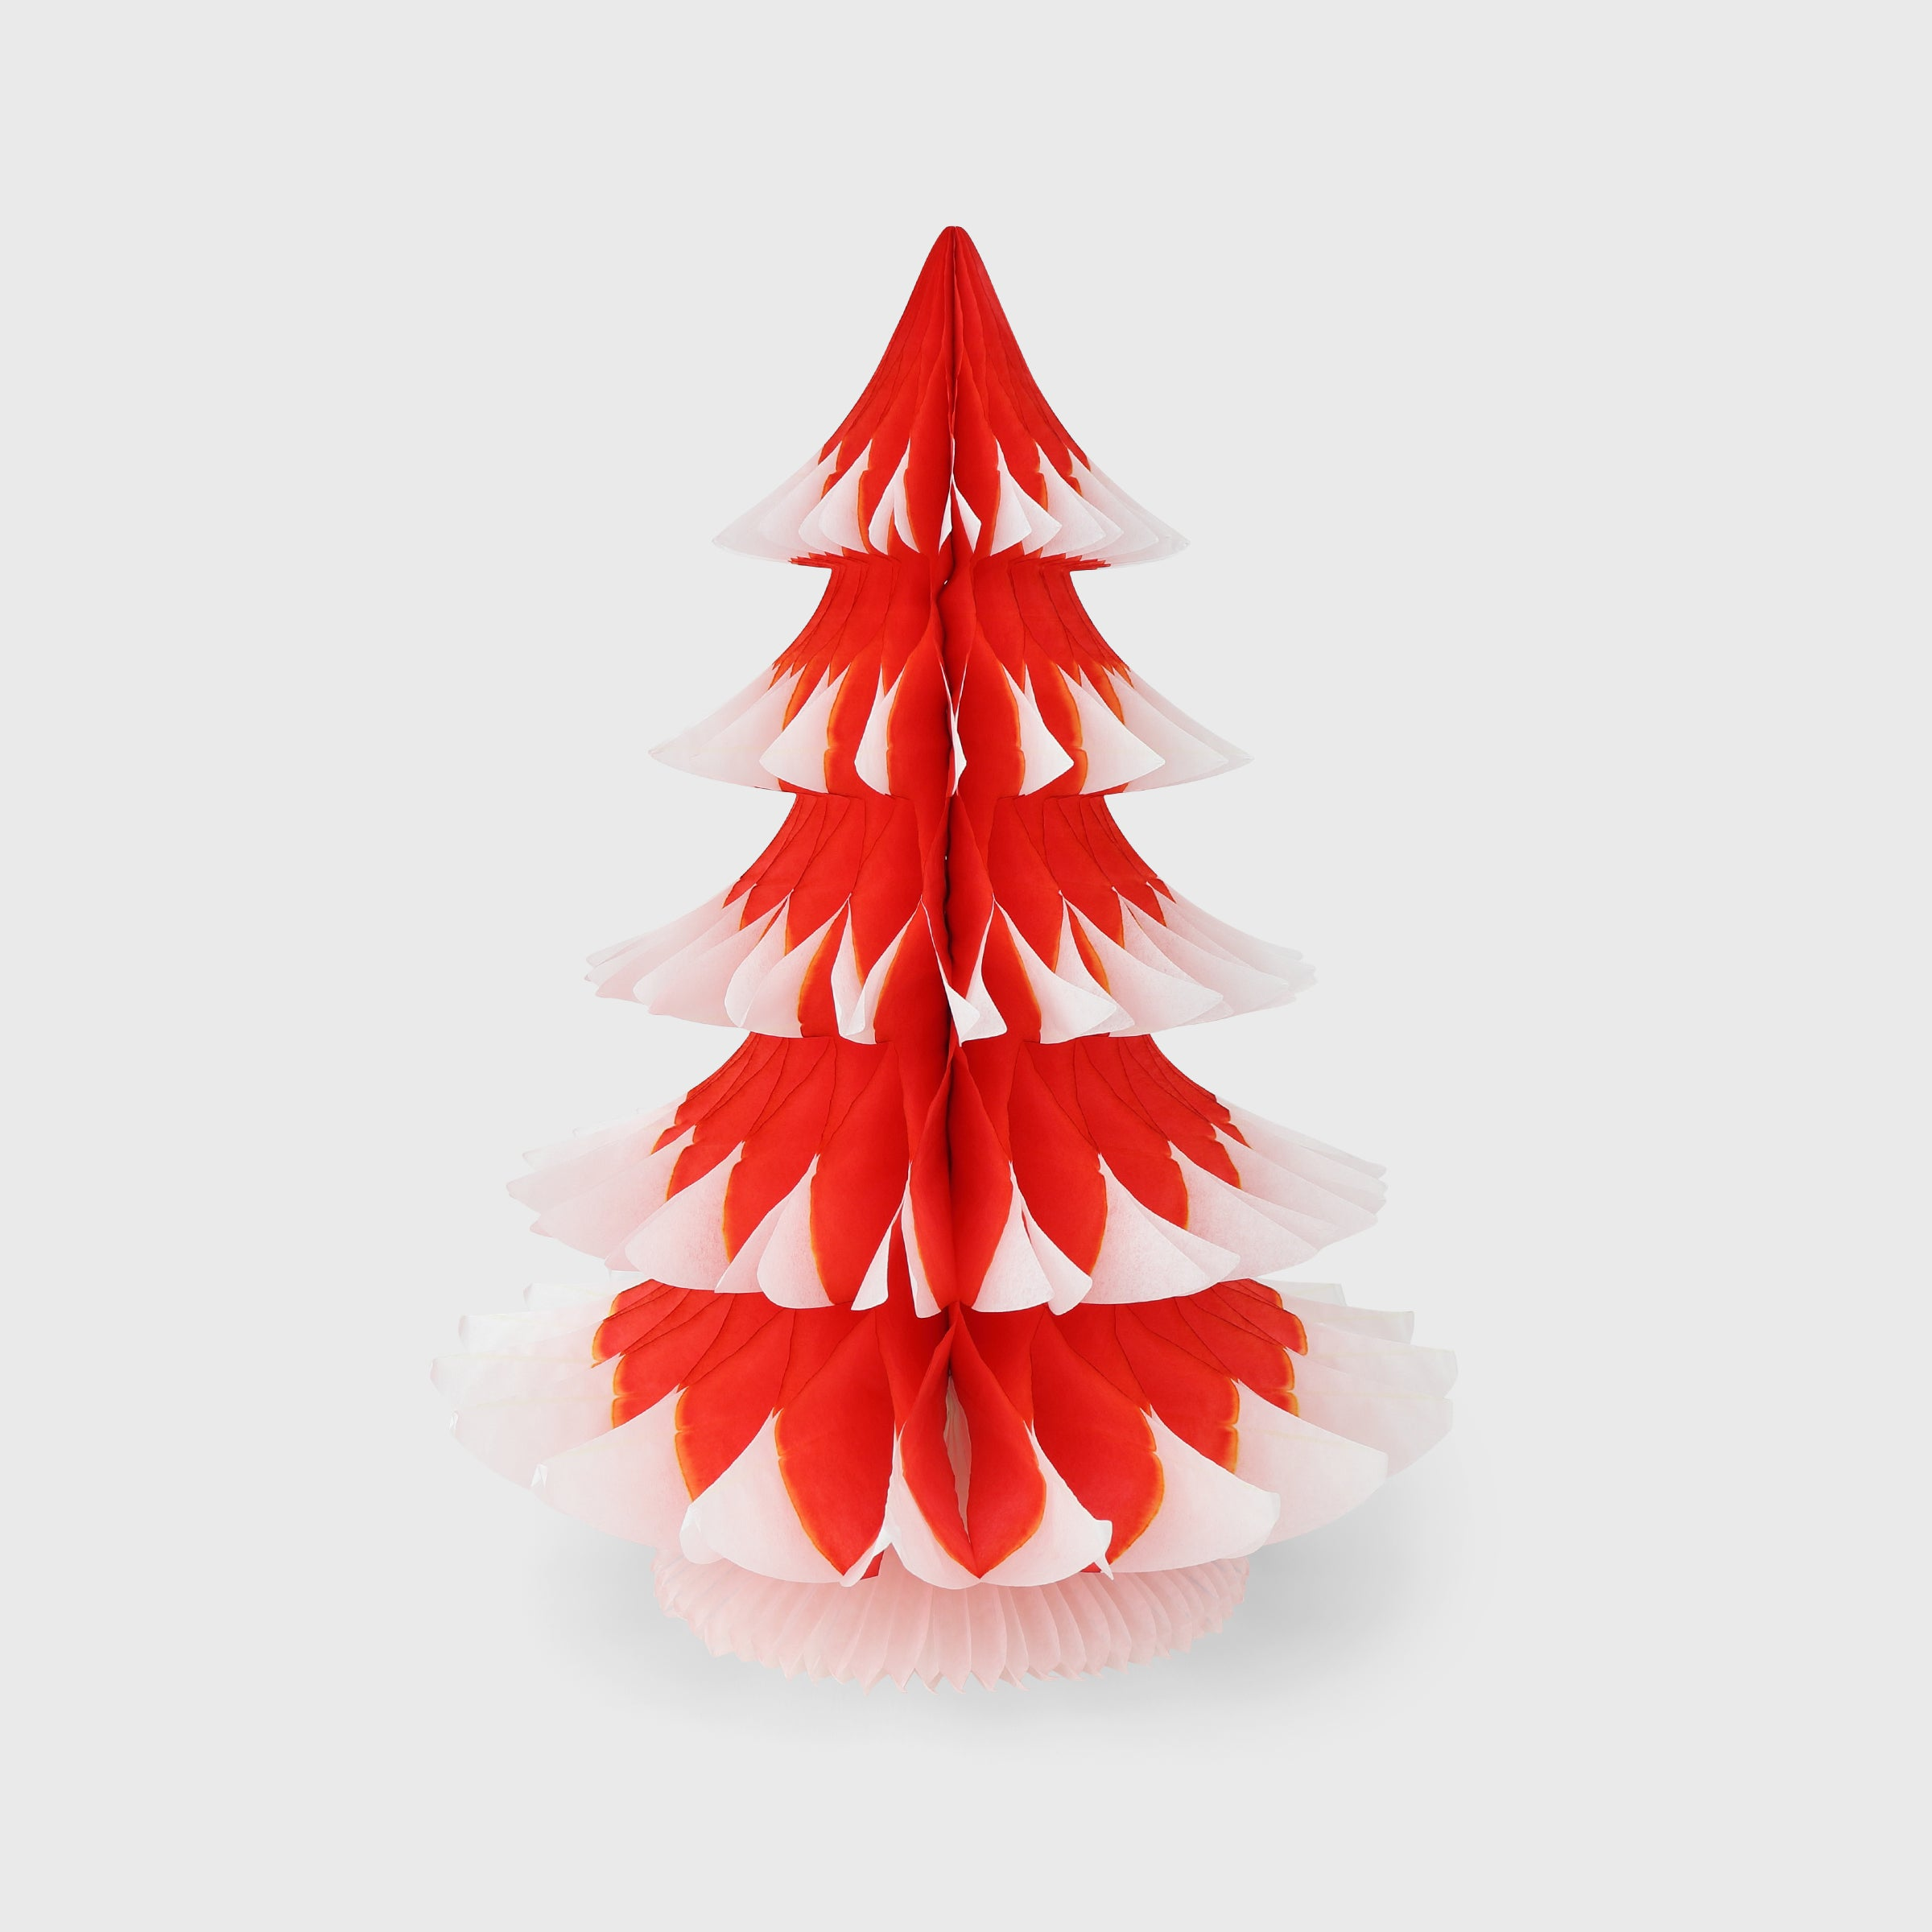 Snow Tipped Honeycomb Christmas Tree 40cm, Bright Red